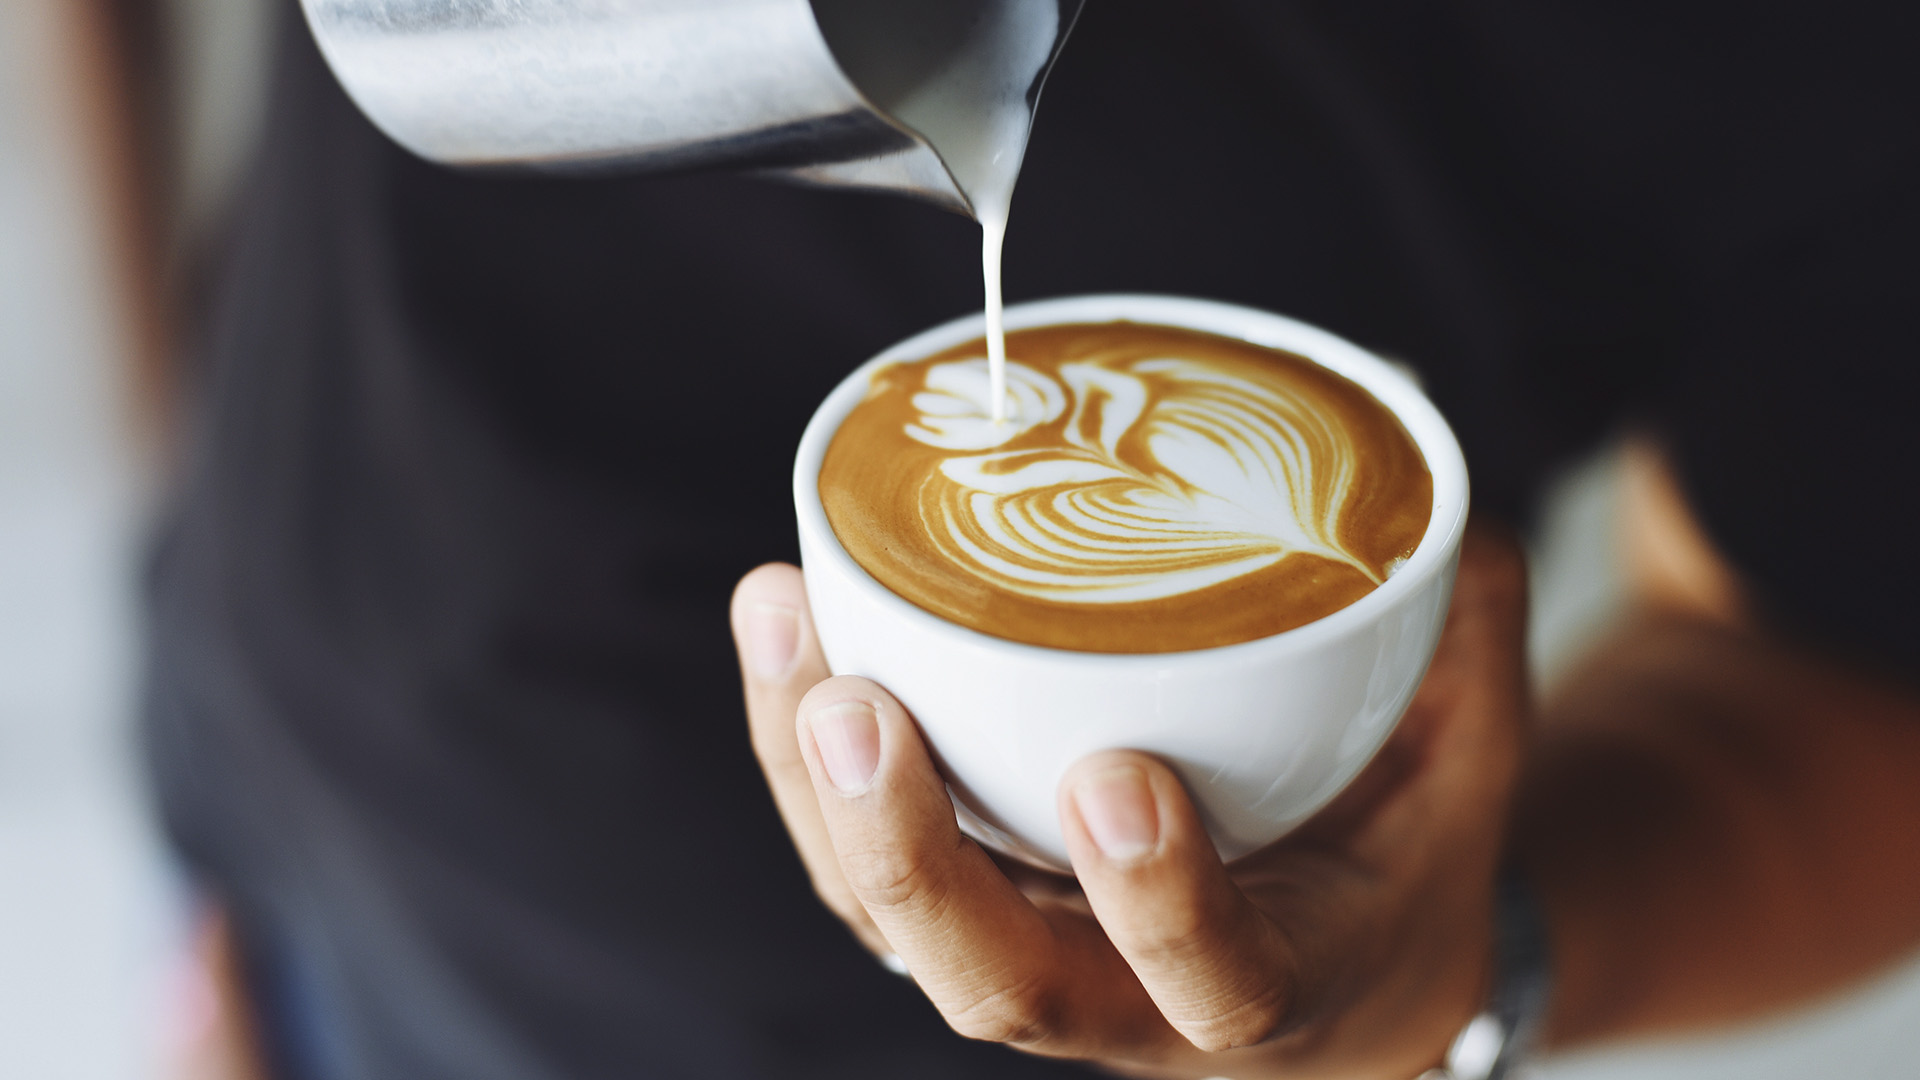 High Caffeine Consumption Linked To Higher Risk Of Blinding Eye Disease